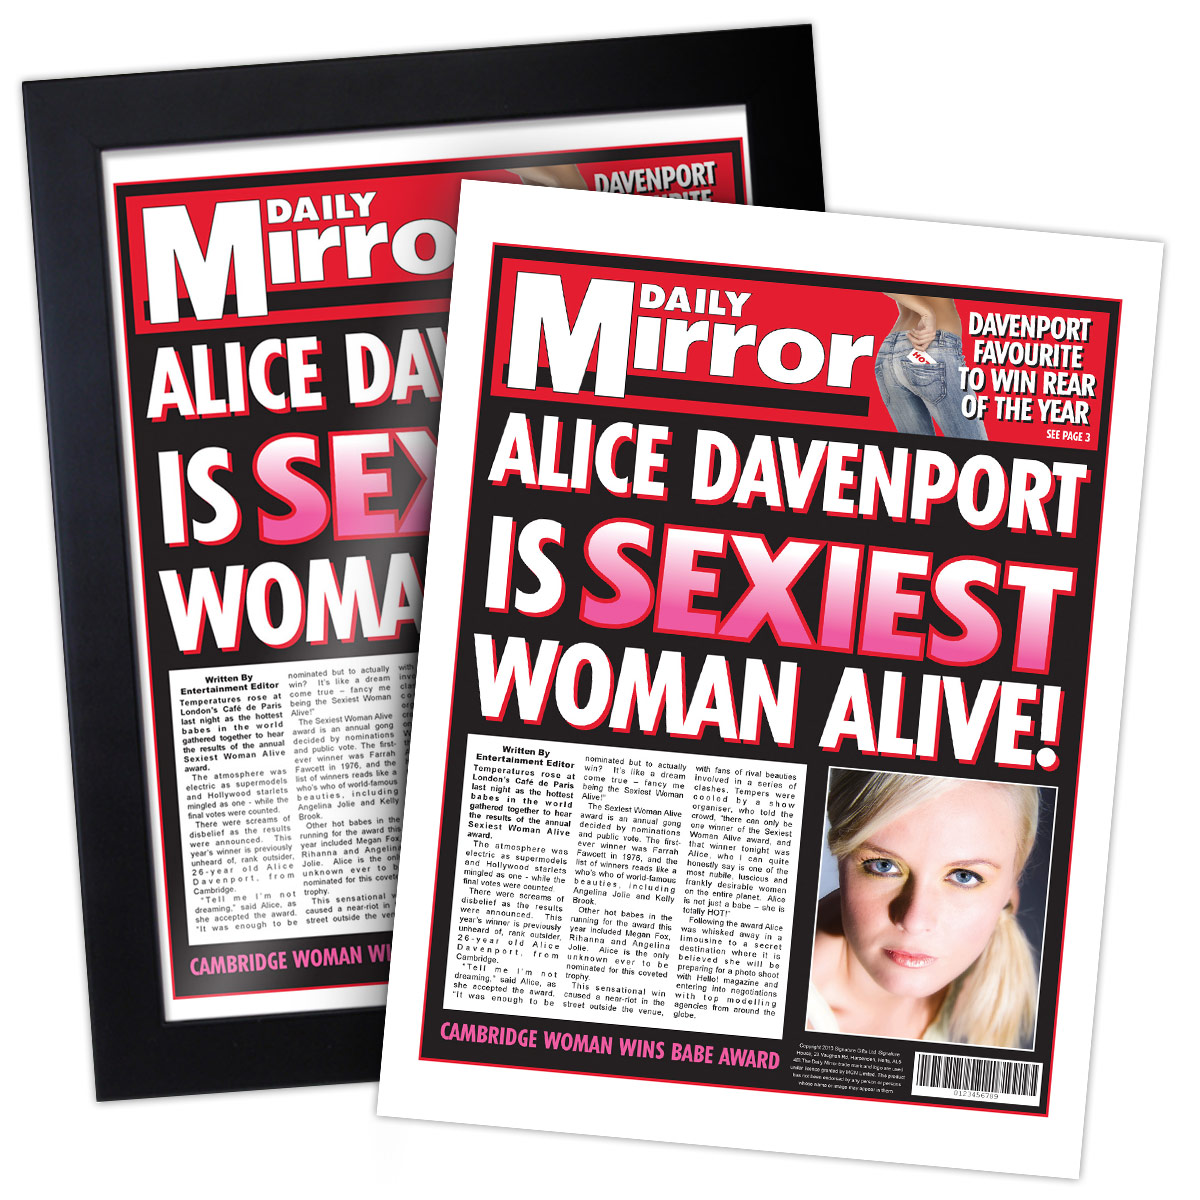 Sexiest Woman Alive Spoof Newspaper - 18th gift